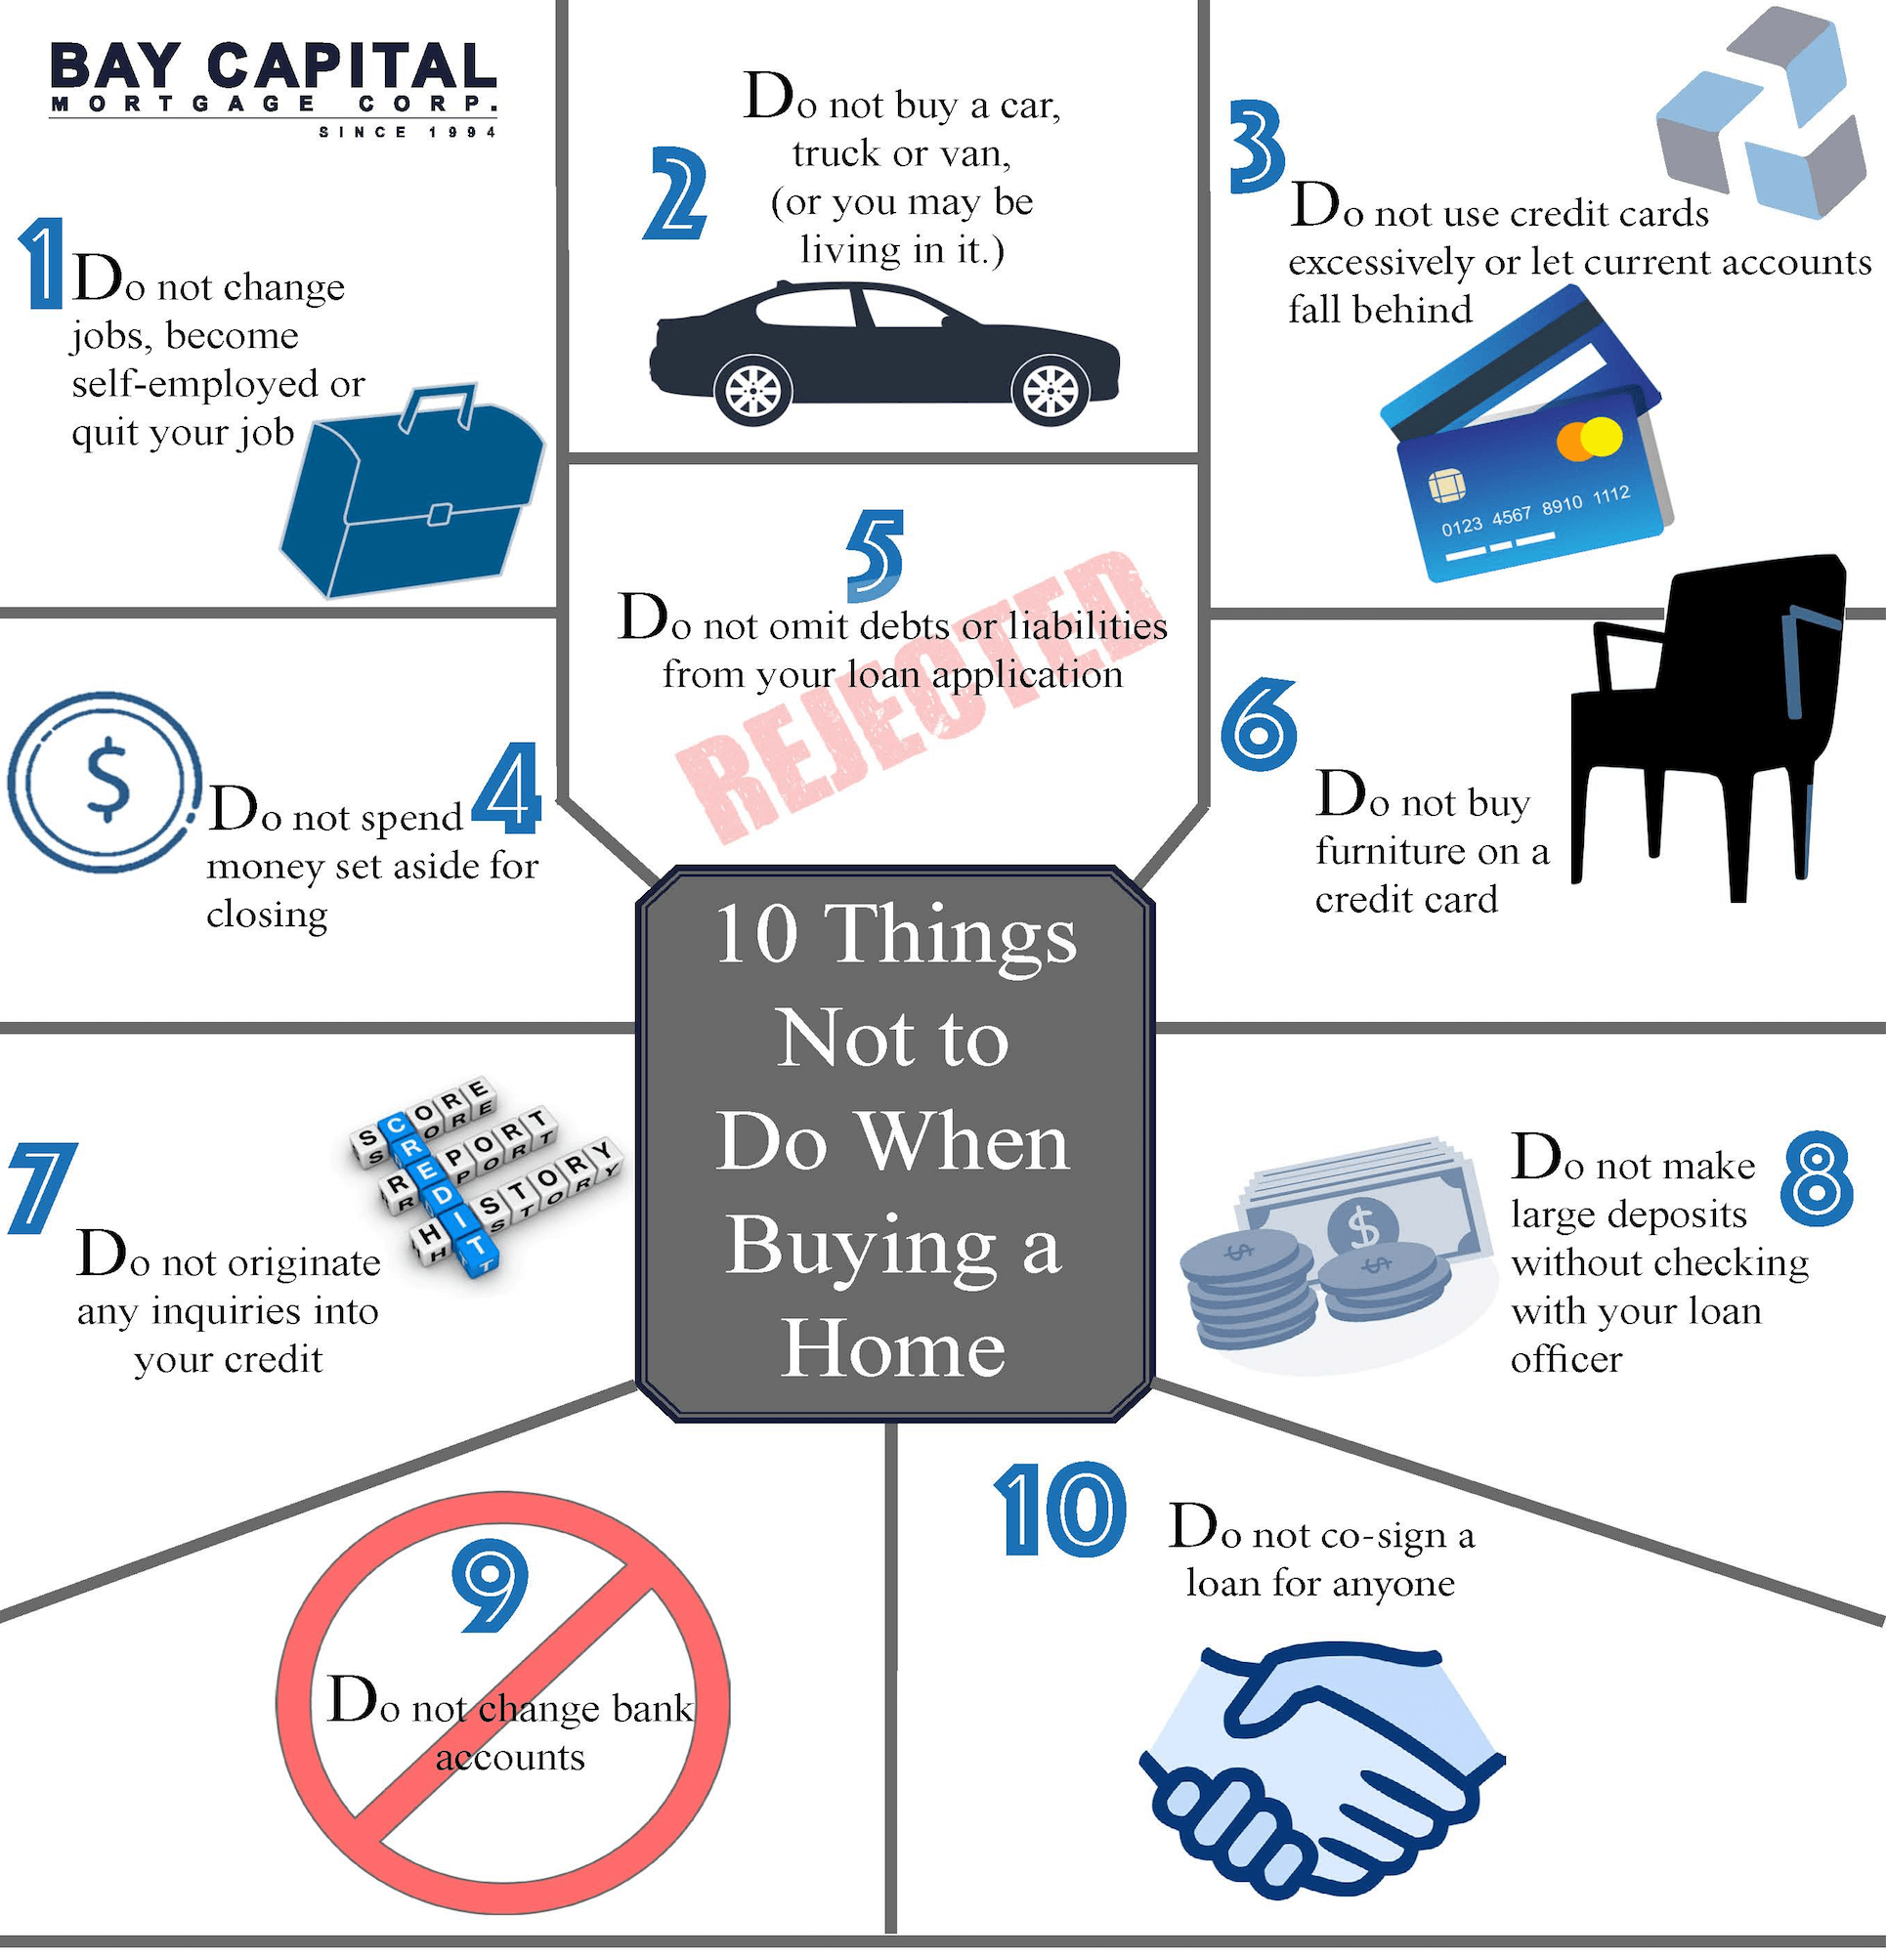 Ten Things To NOT DO When Buying A Home